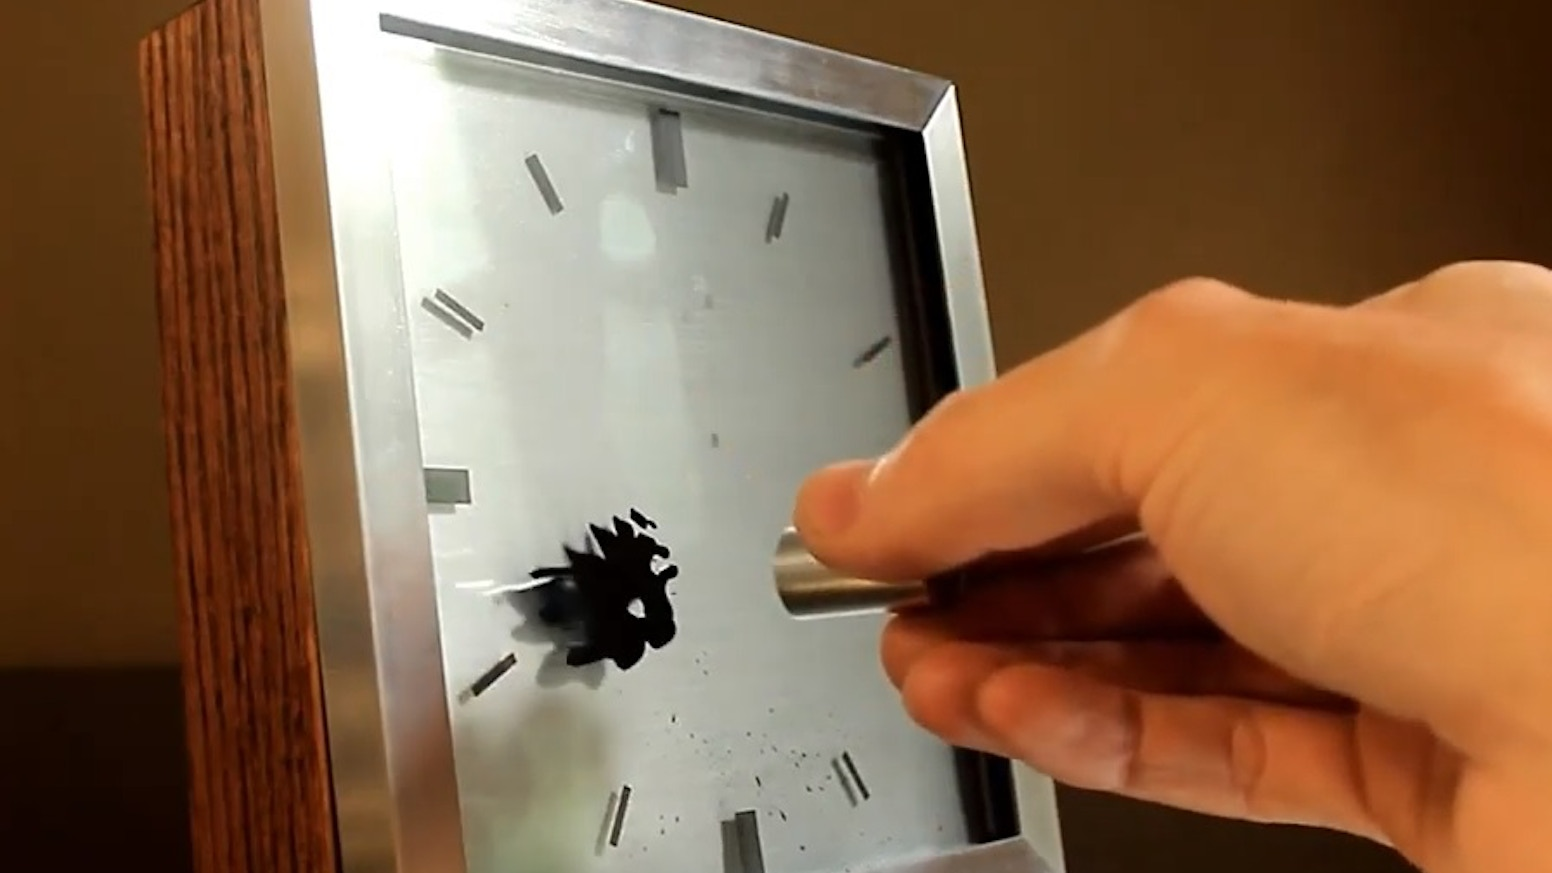 An amazing new clock design featuring magnetic liquid hands, a modular design and changeable faces.